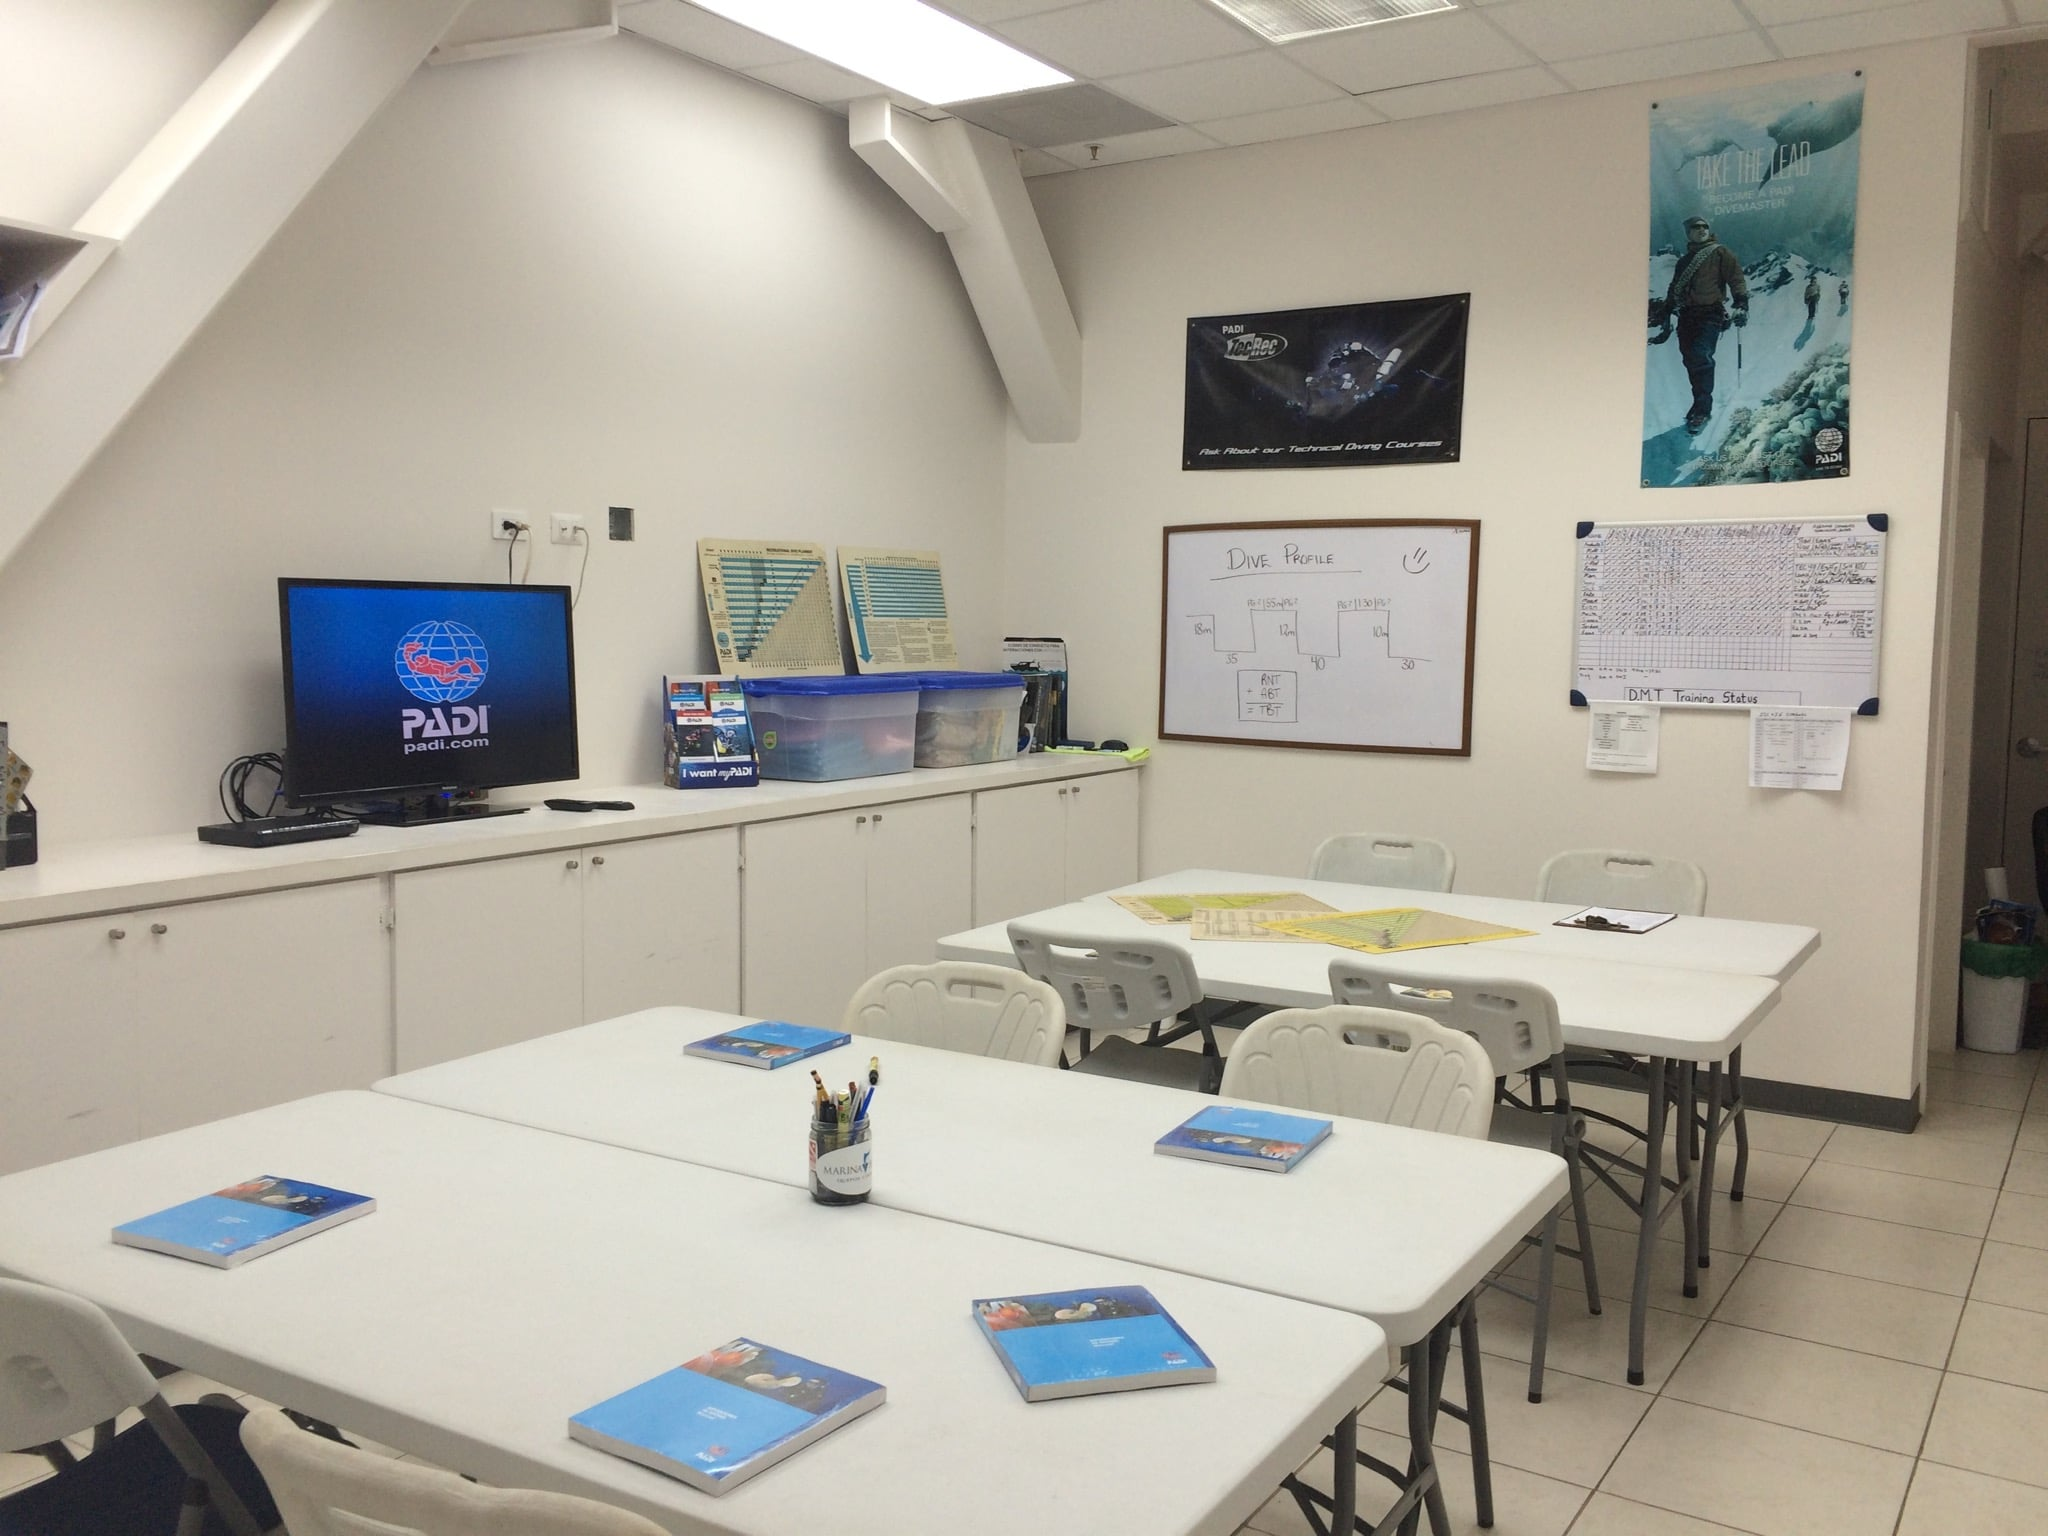 padi idc classroom at Oceans Unlimited with Go Pro